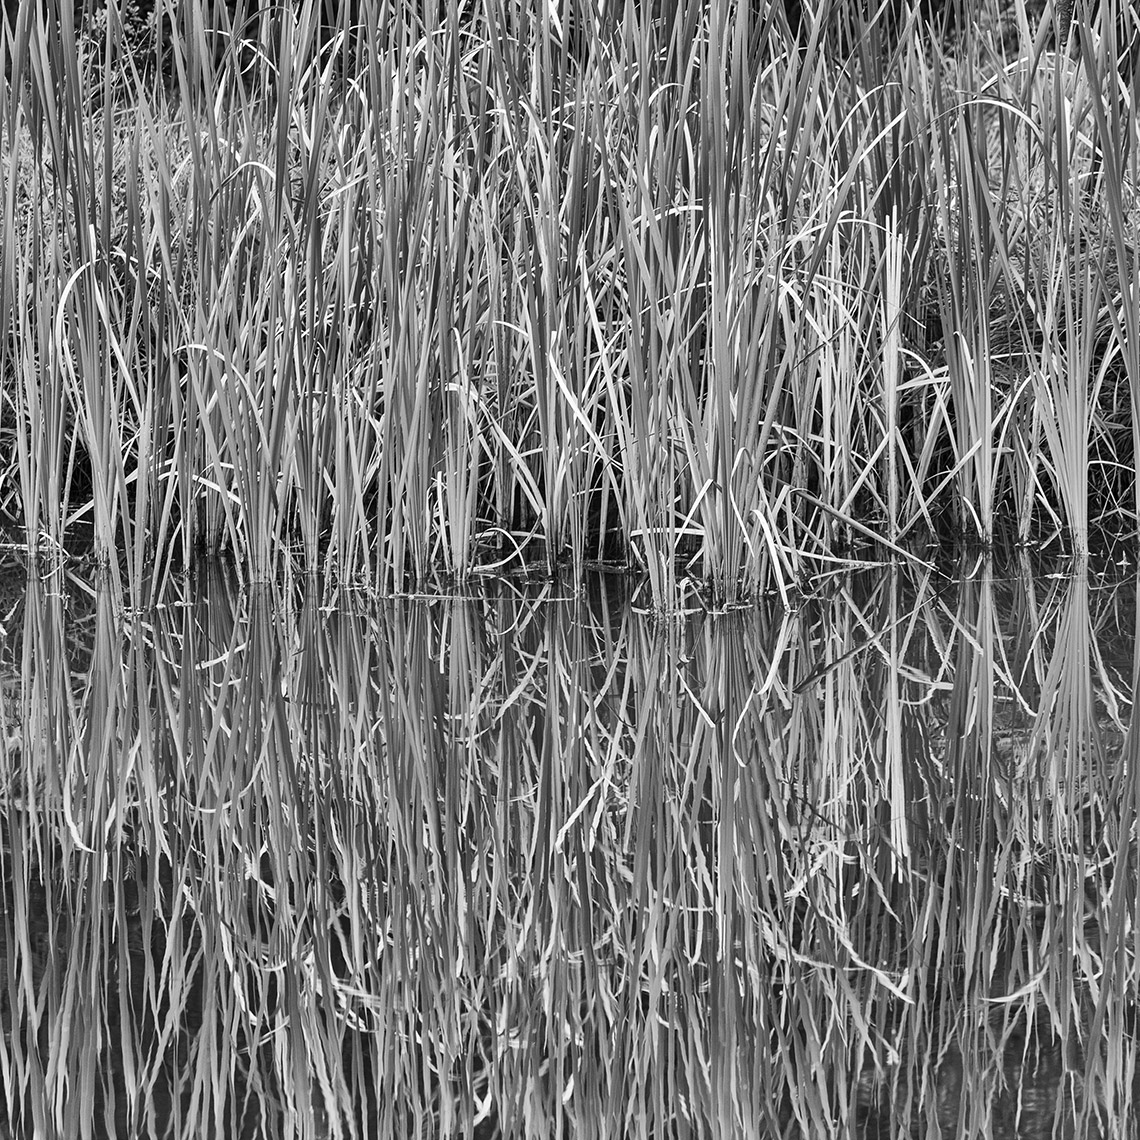 05 Reflecting Marsh